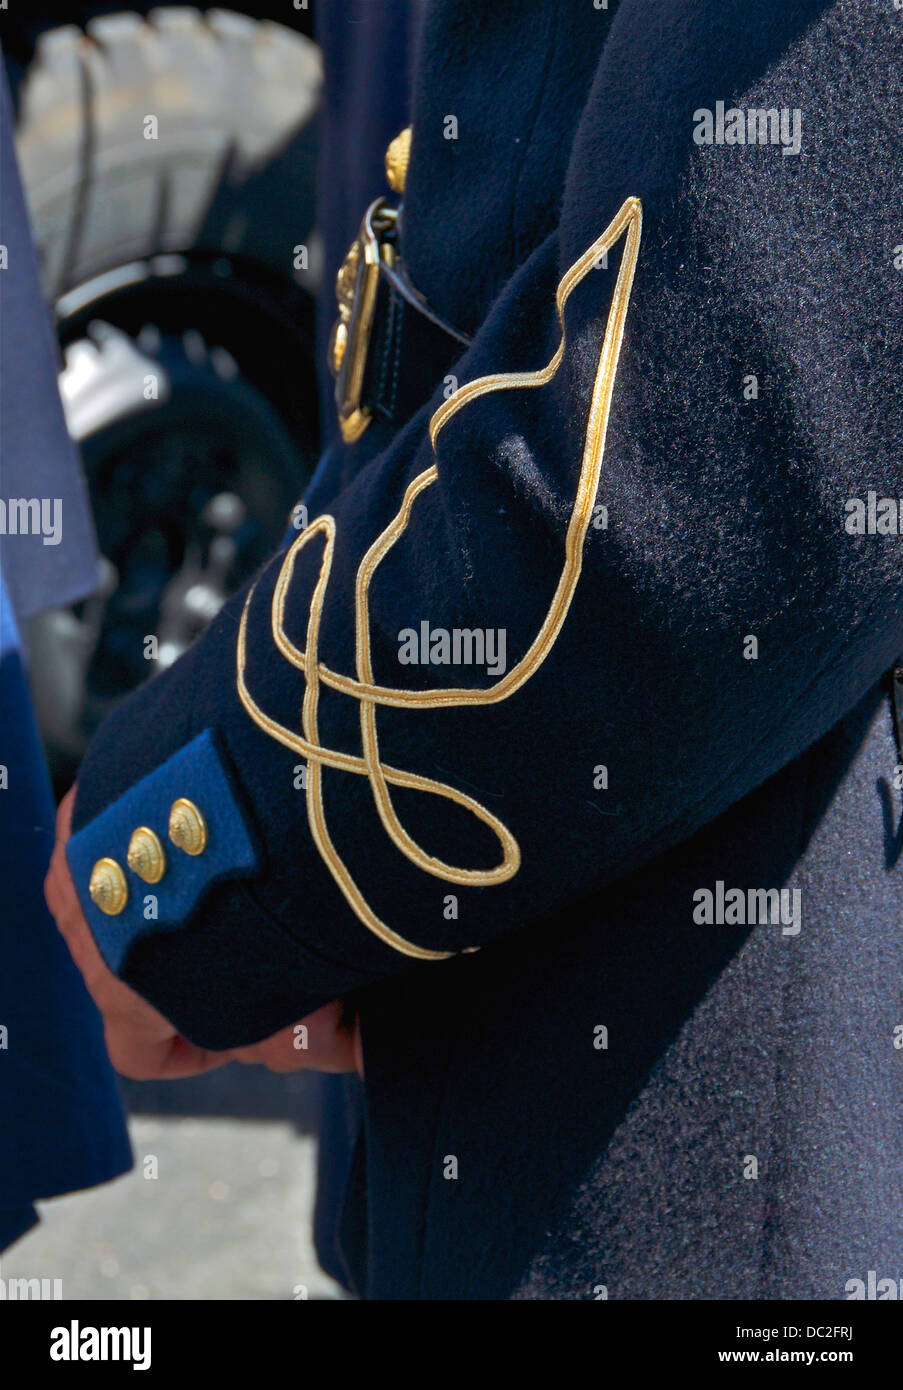 Detail of the rank insignia (called 'Hungarian knot') of the uniform of a Cadet Officer of the French Army - Stock Image